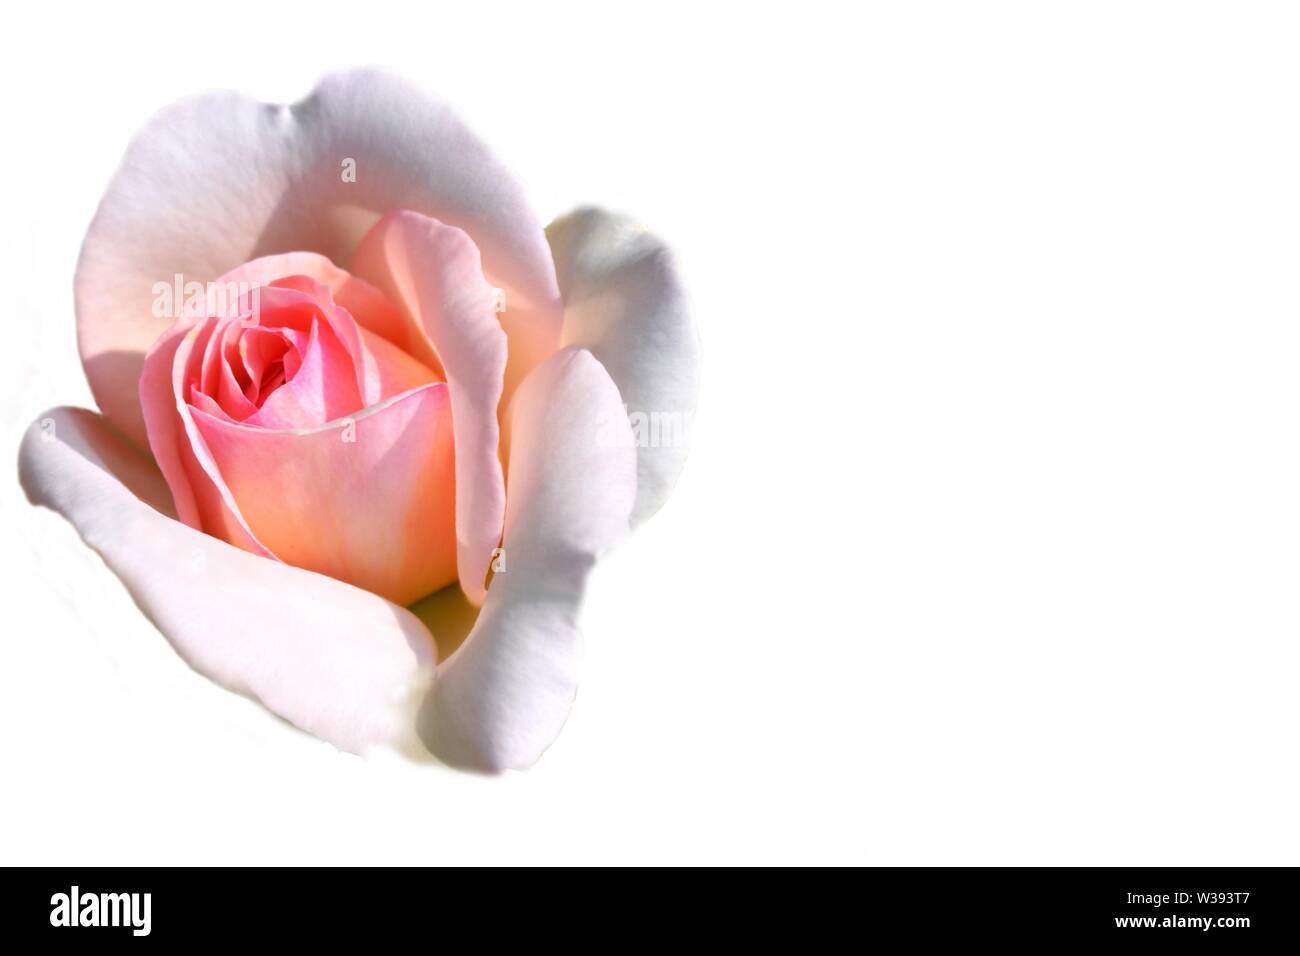 Greeting card with pink rose image on the left side on white background and copy space for writing. Stock Photo